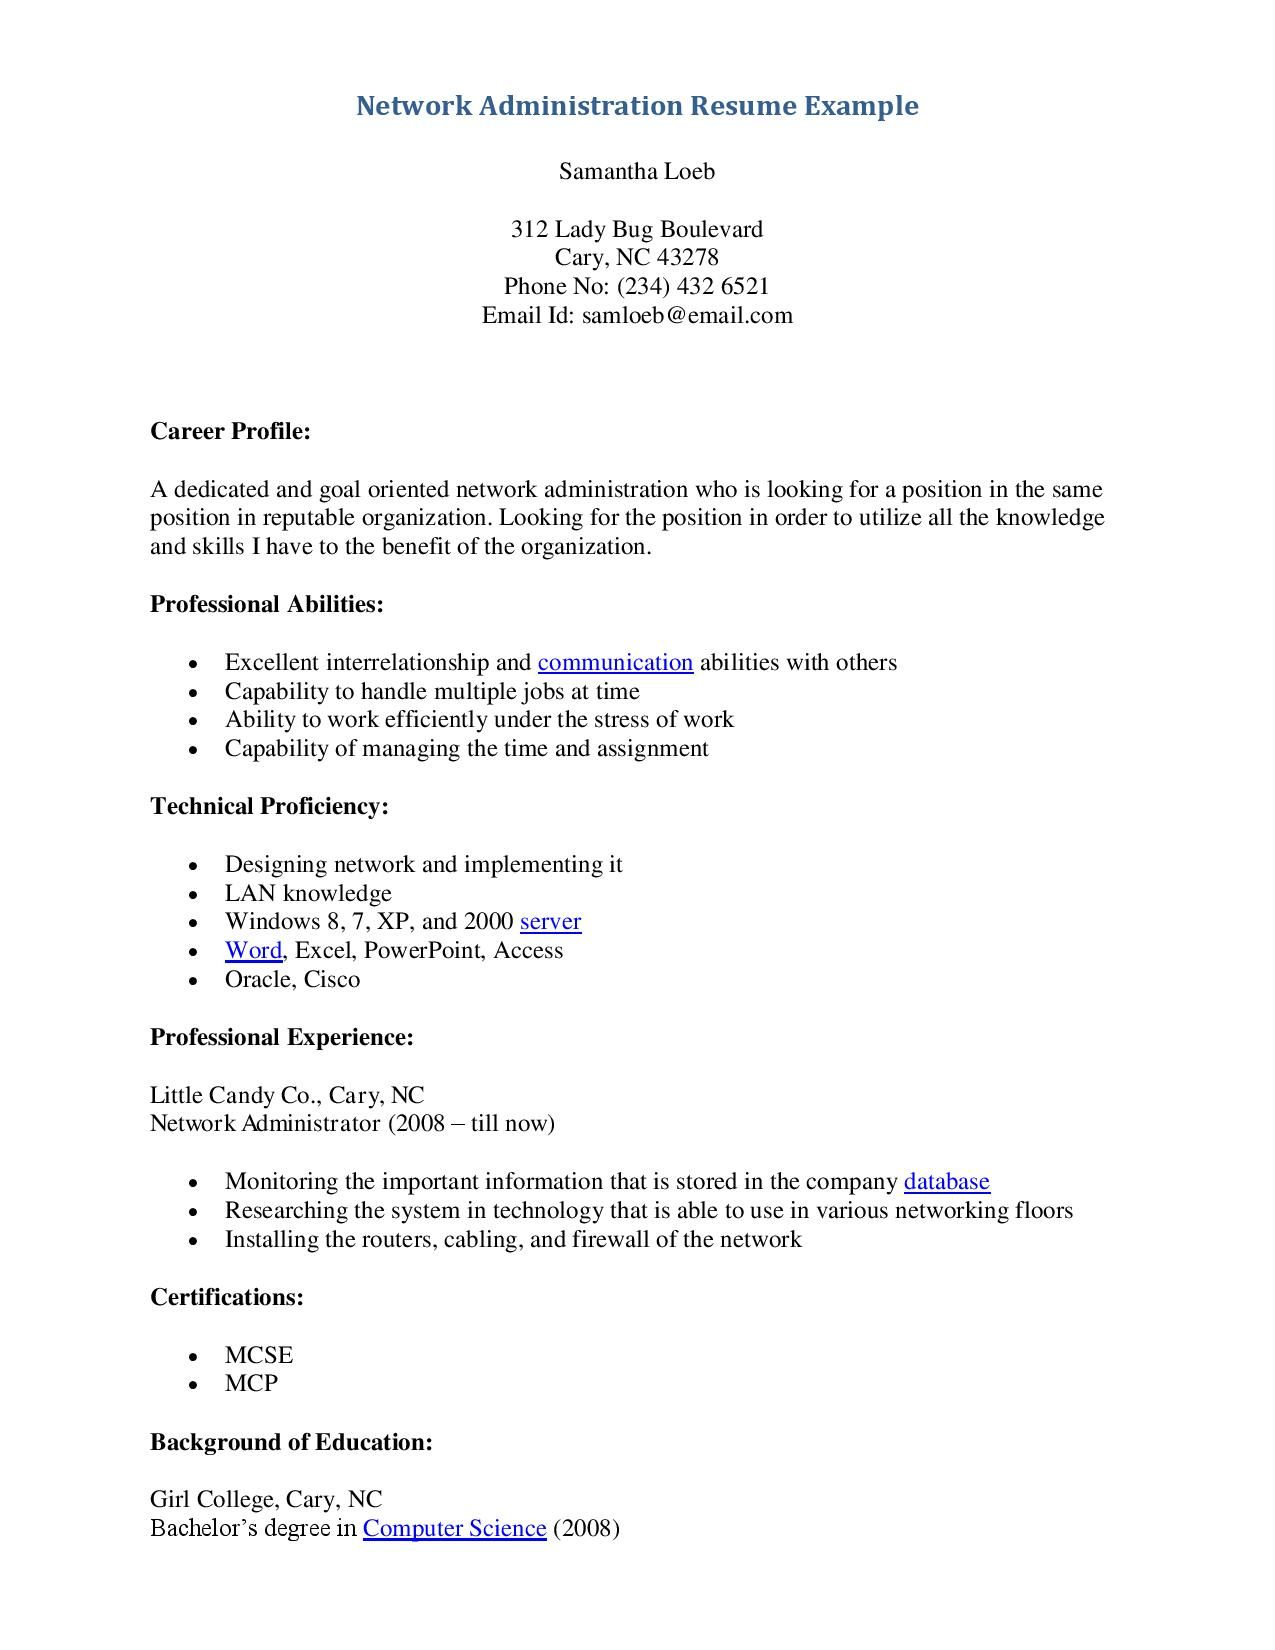 Resume Examples For College Students With No Experience Best Cover Letter For Engineering Internshipthis Is A Format For